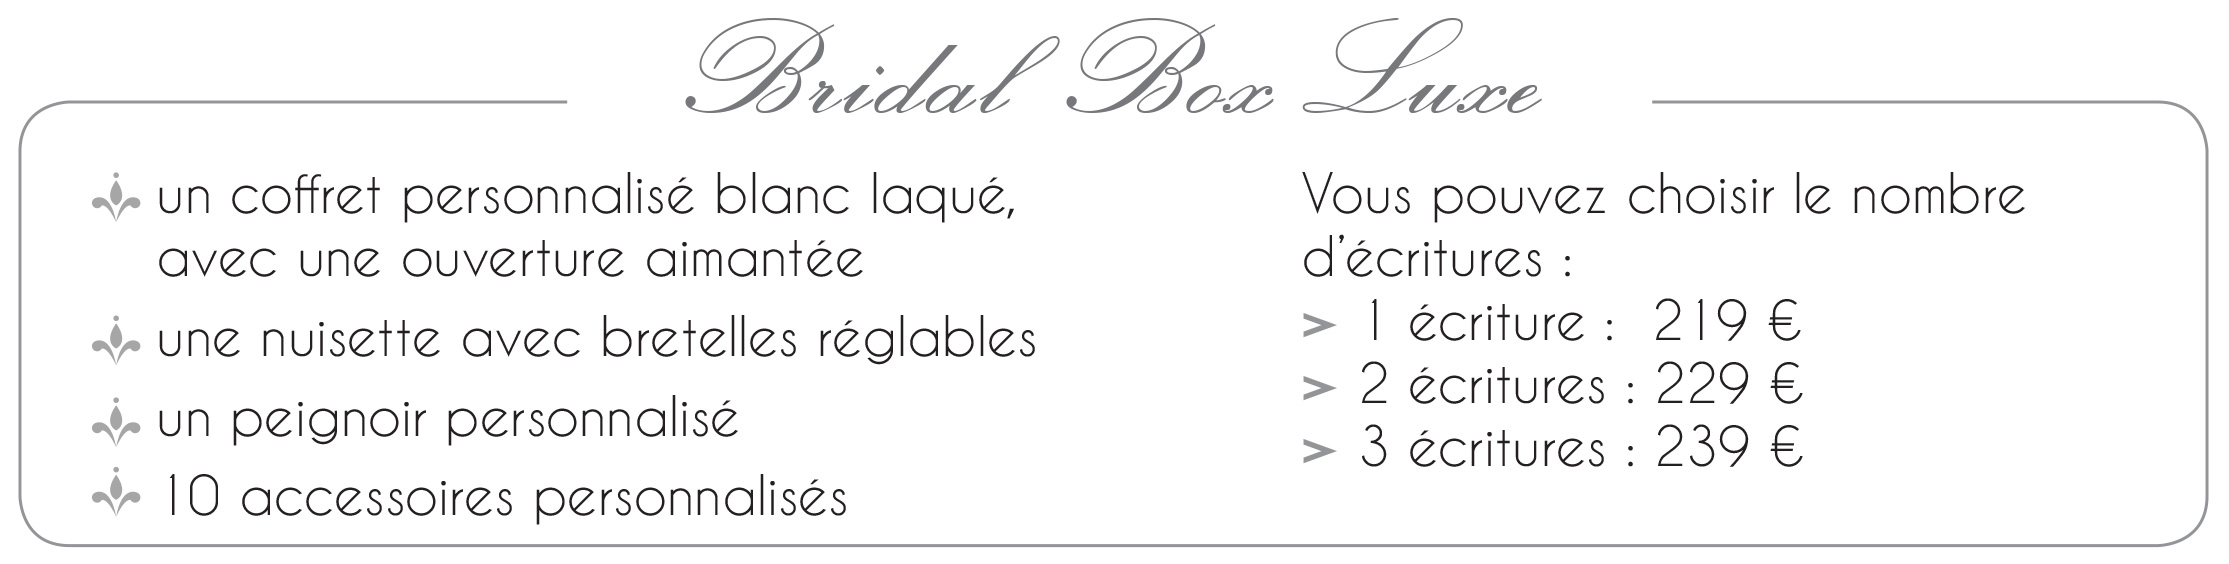 Bridal-Box-luxe